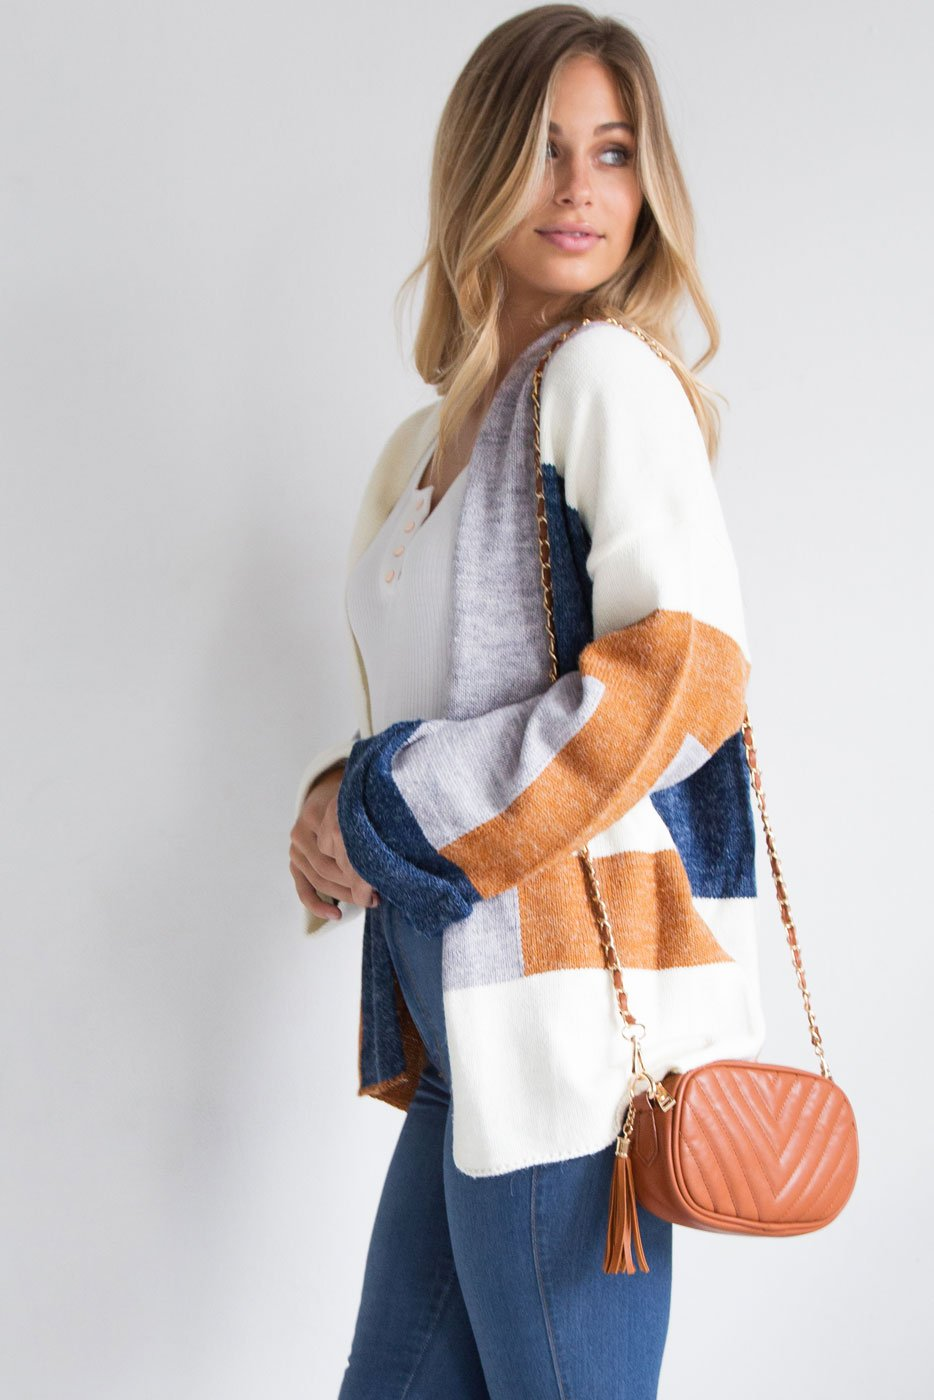 Cardigans - Don't Miss The Perfect Cardigan